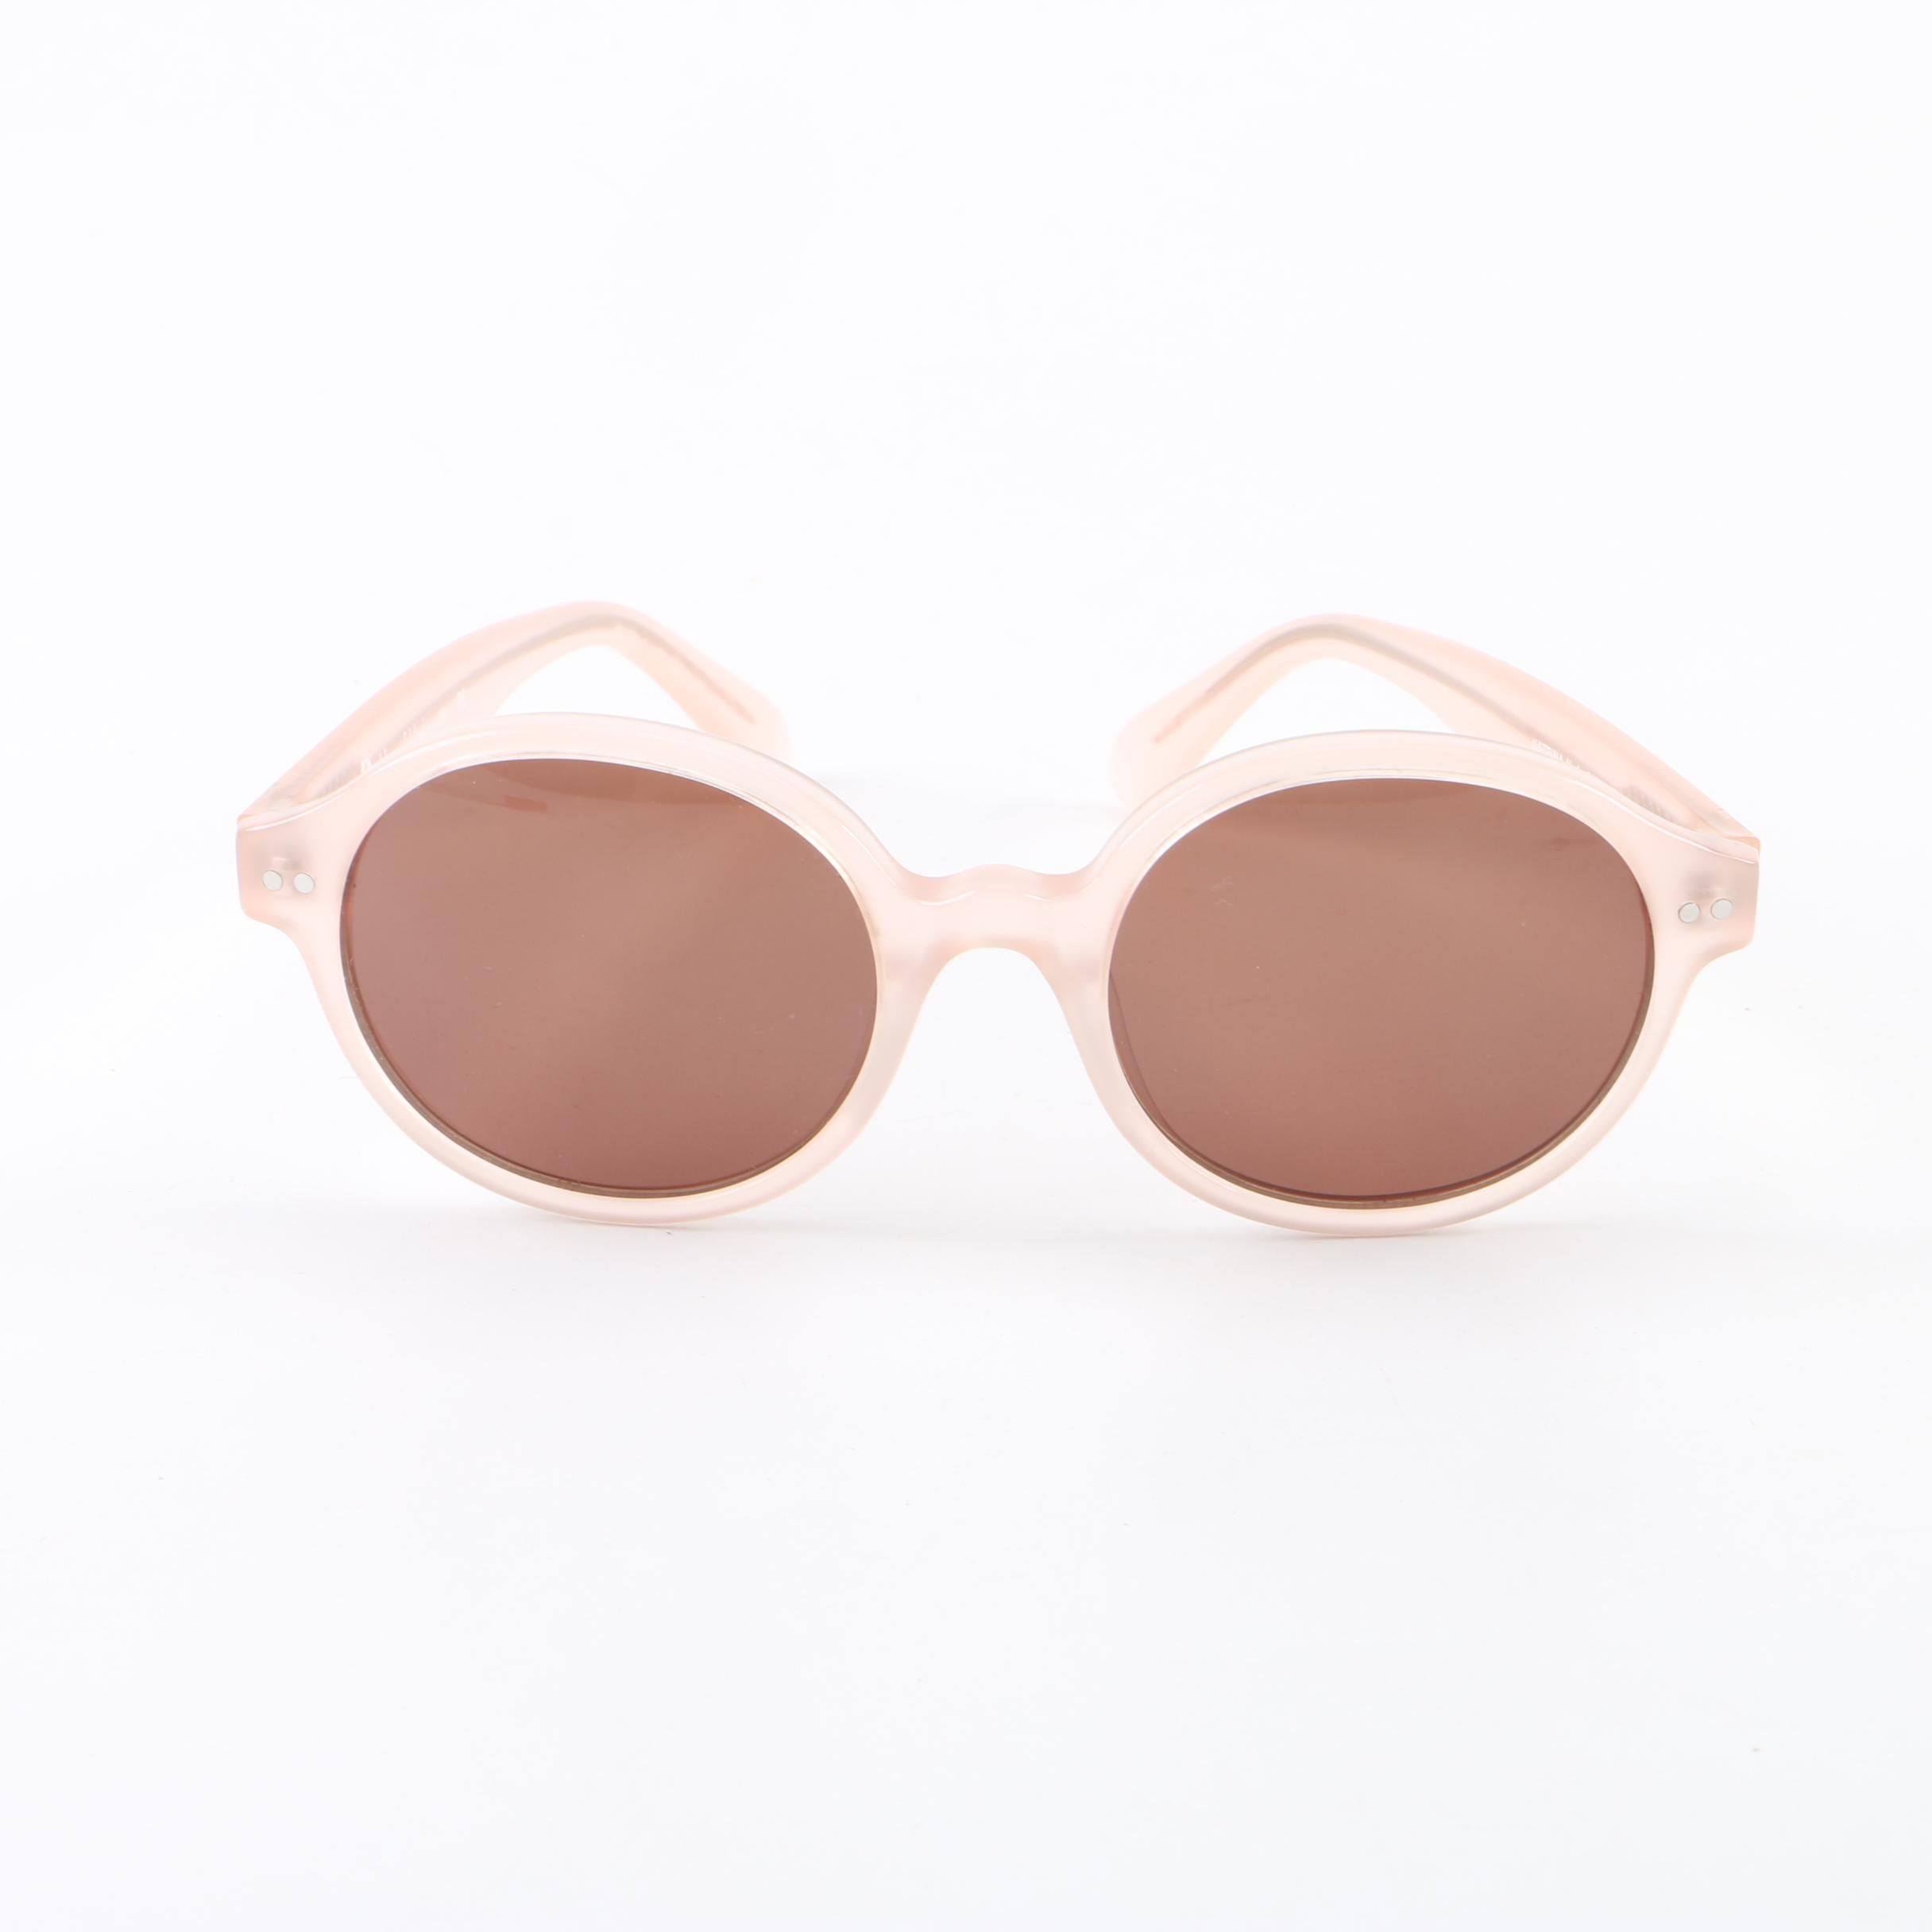 House of Harlow 1960 Katrina Sunglasses in Nude